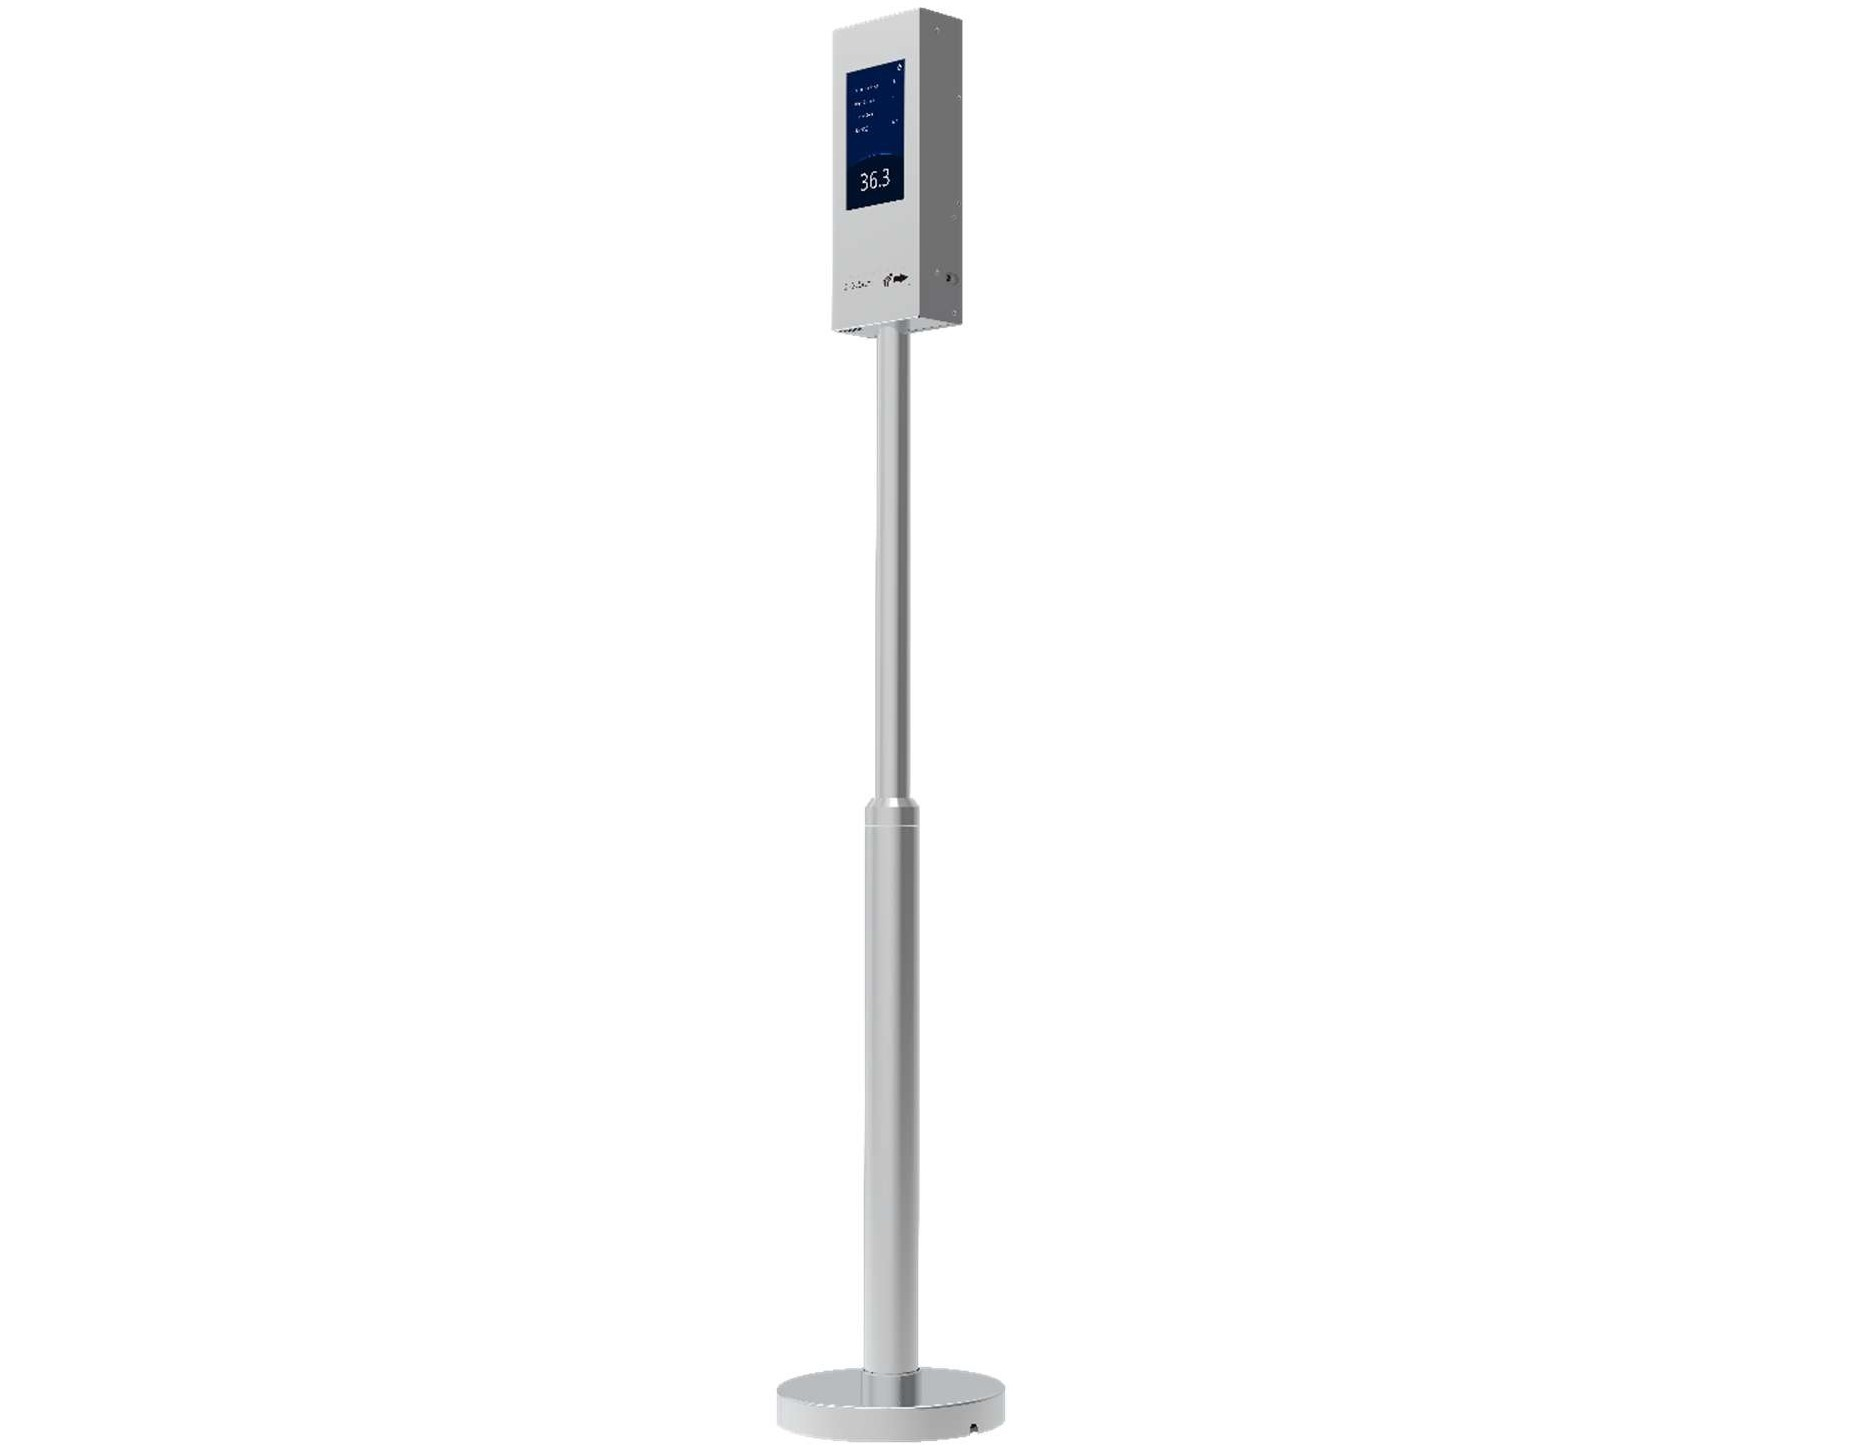 unv OTC-513 Standing Pole-mounted Body Thermometer